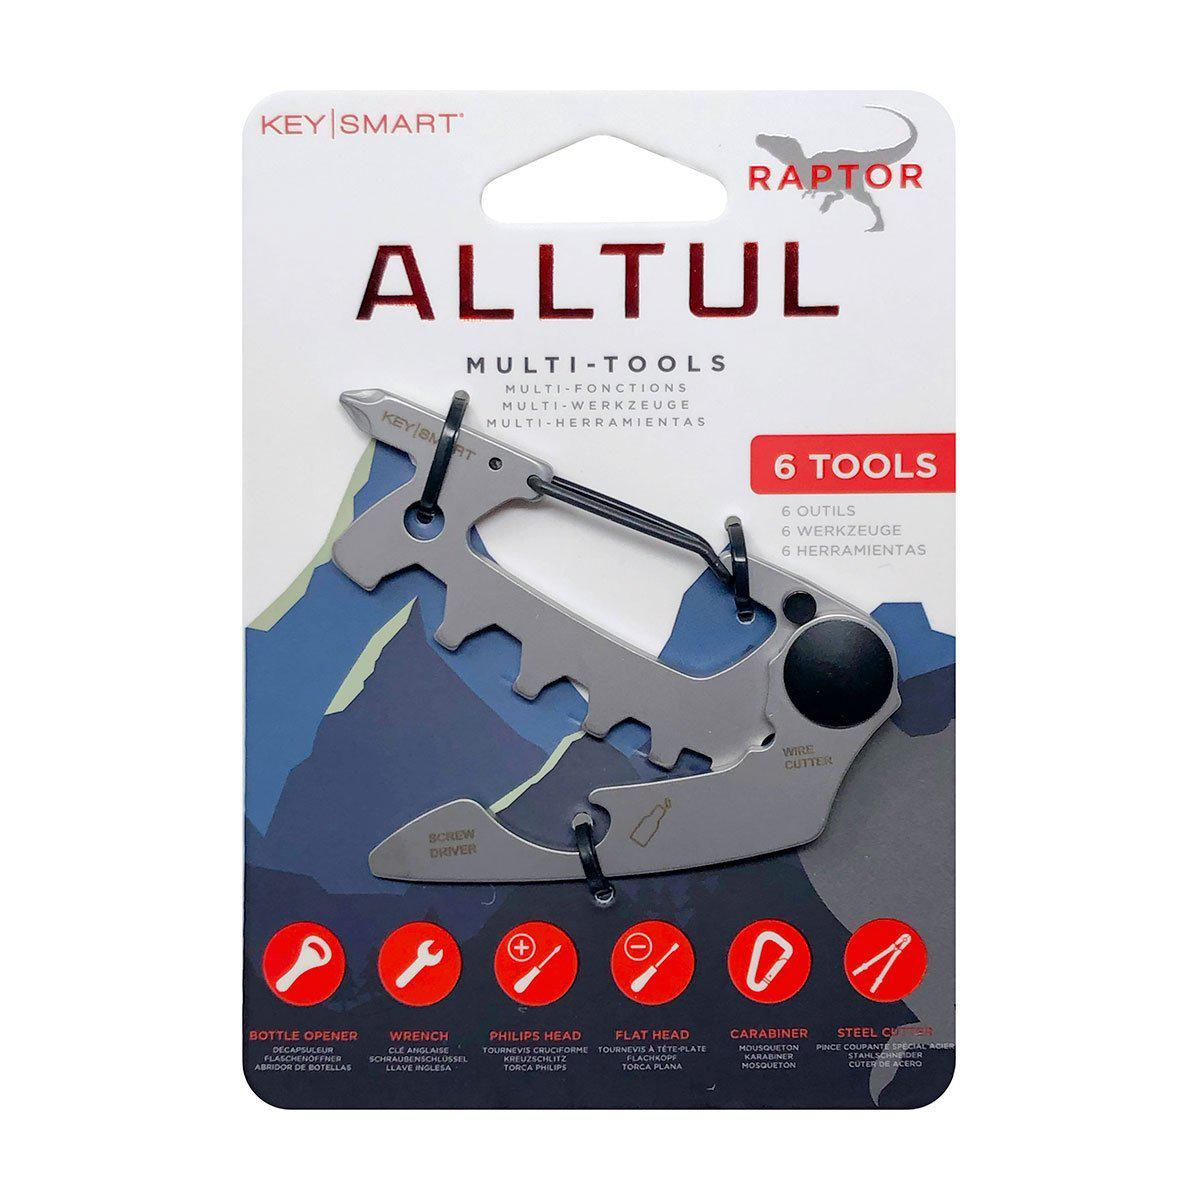 AllTul Animal Multi-tools - 3 options